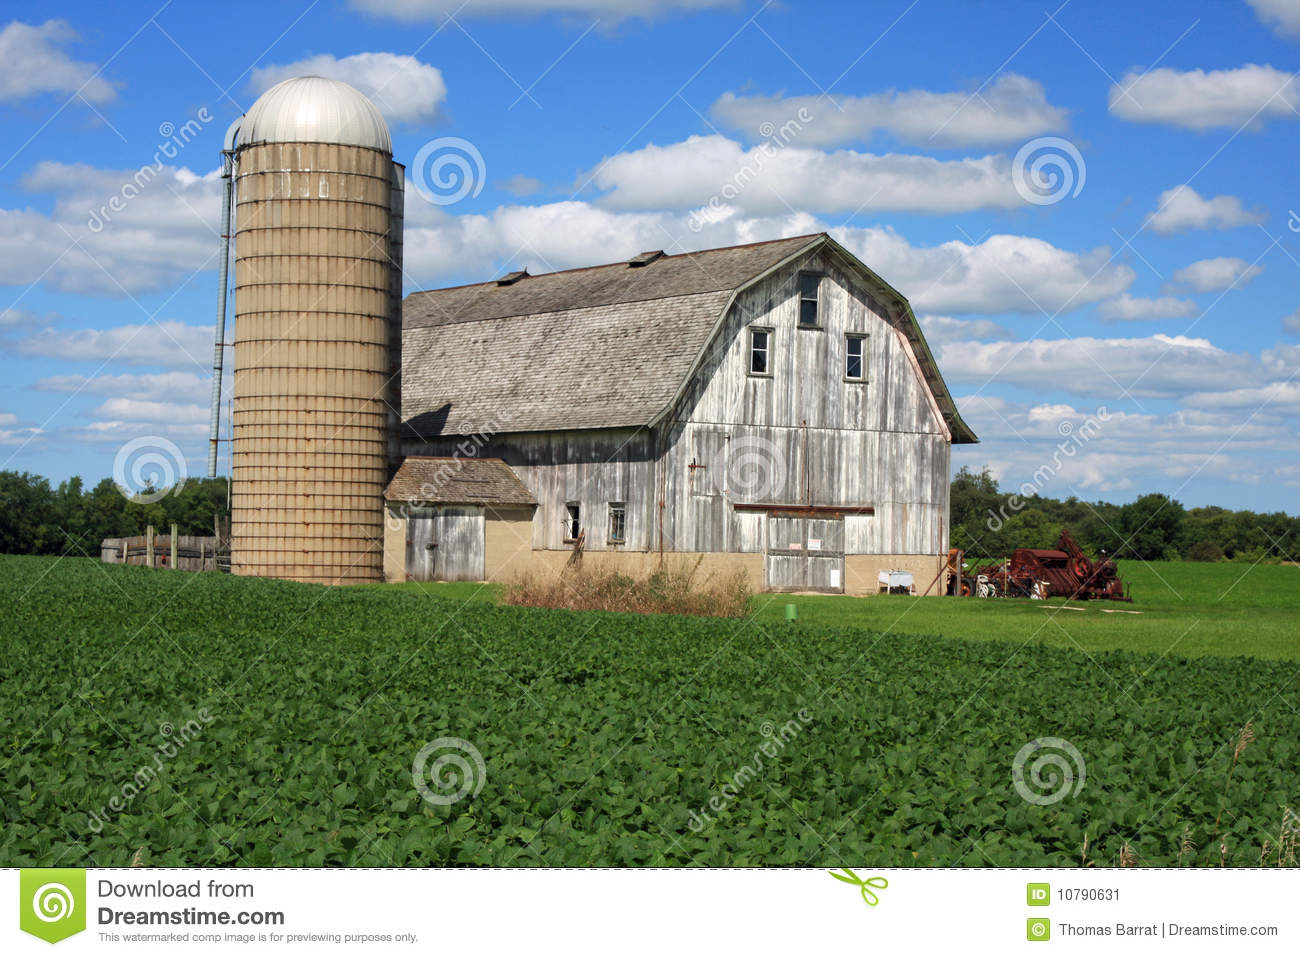 Attractive Barn And Silo In Wisconsin Stock Image - Image ...